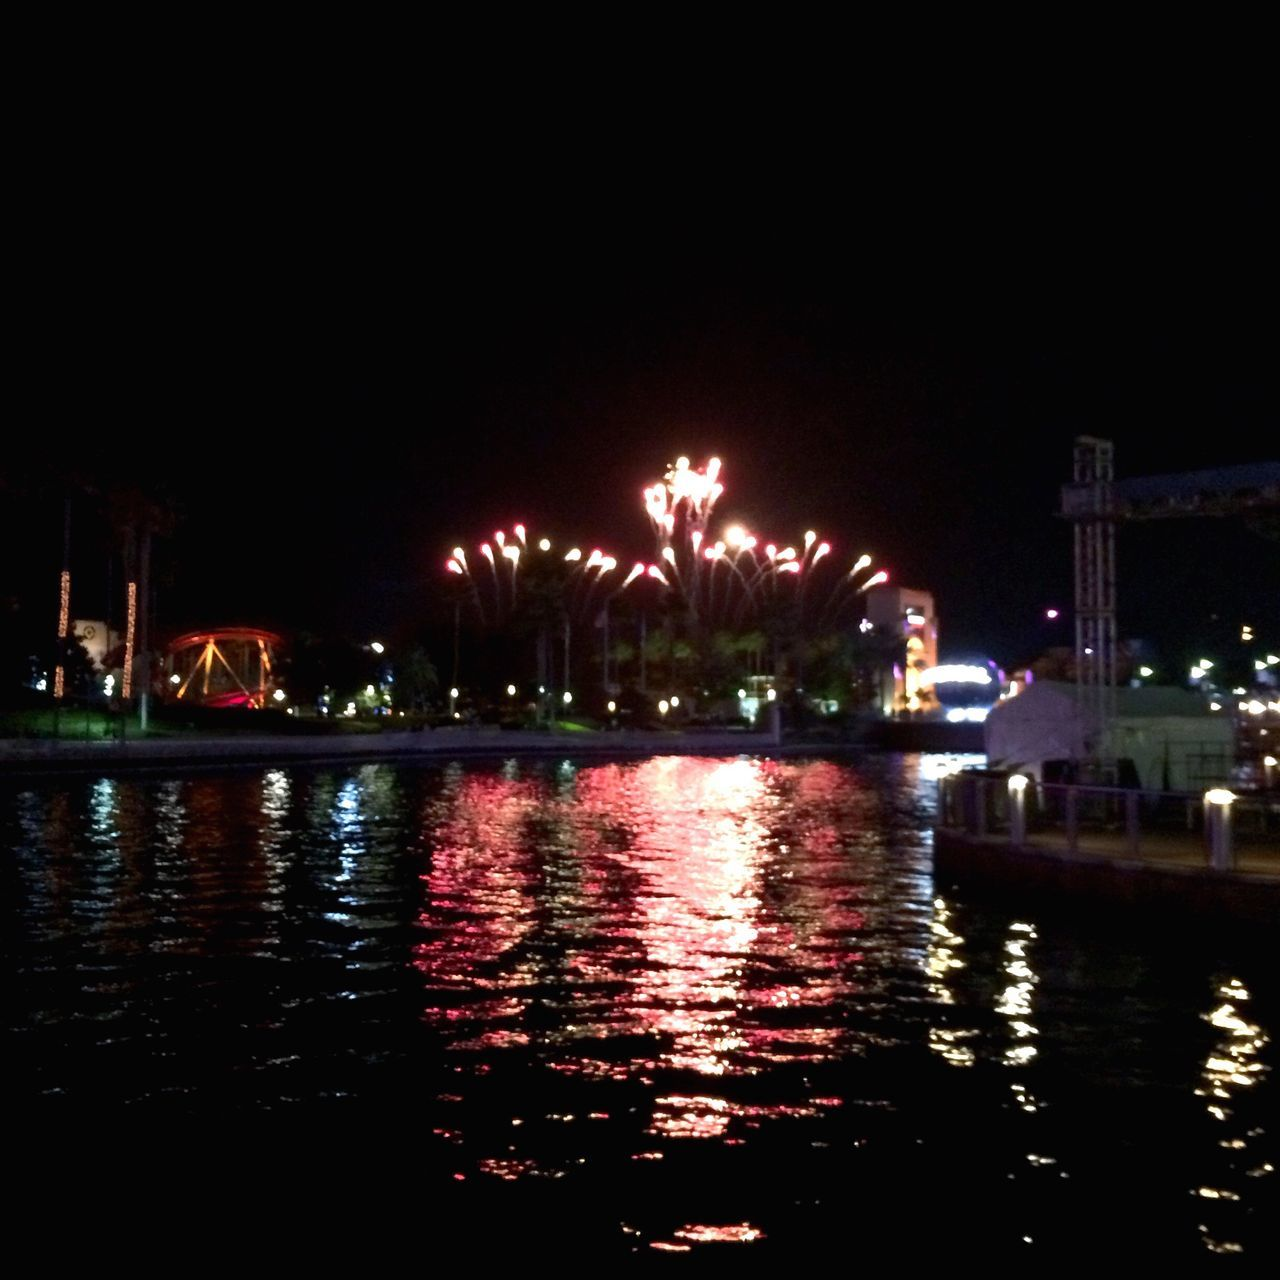 Great Performance Universal Fireworks Hello World Orlando Florida Journey Background Point Of View Water Loving Life! Light It Up A Spark In The Sky Hanging Out Good Times Beautiful Day Taking Photos Outdoors End Of The Day No People